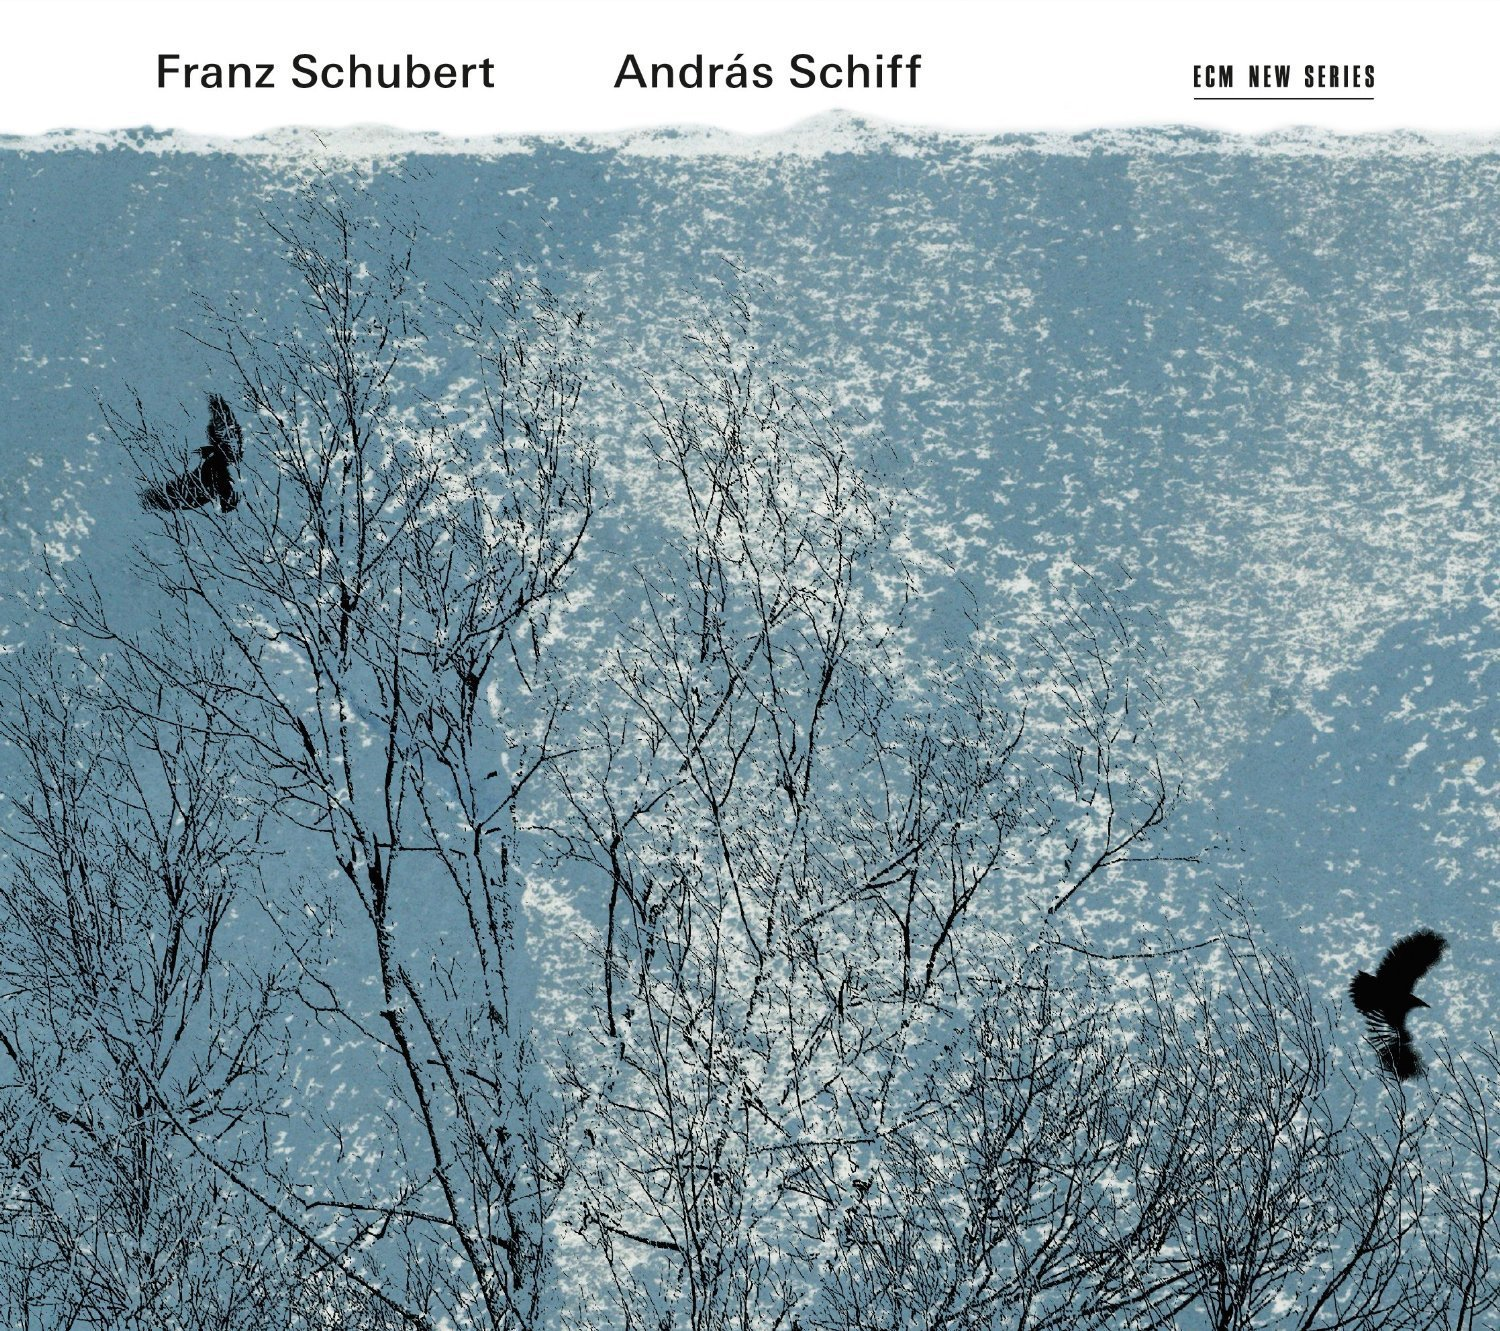 A new ECM recording of Schumann on the fortepiano has one of those irresistible covers that foreshadows the superb contents of the well designed package